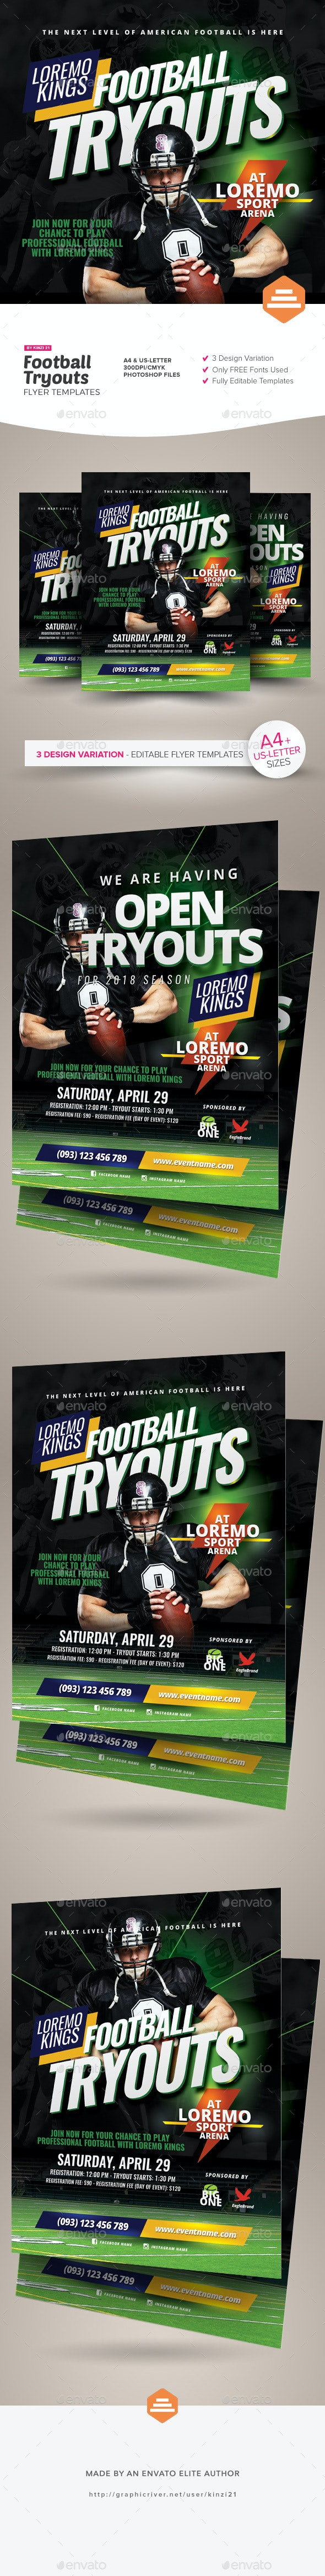 Football Tryouts Flyer Templates - Sports Events